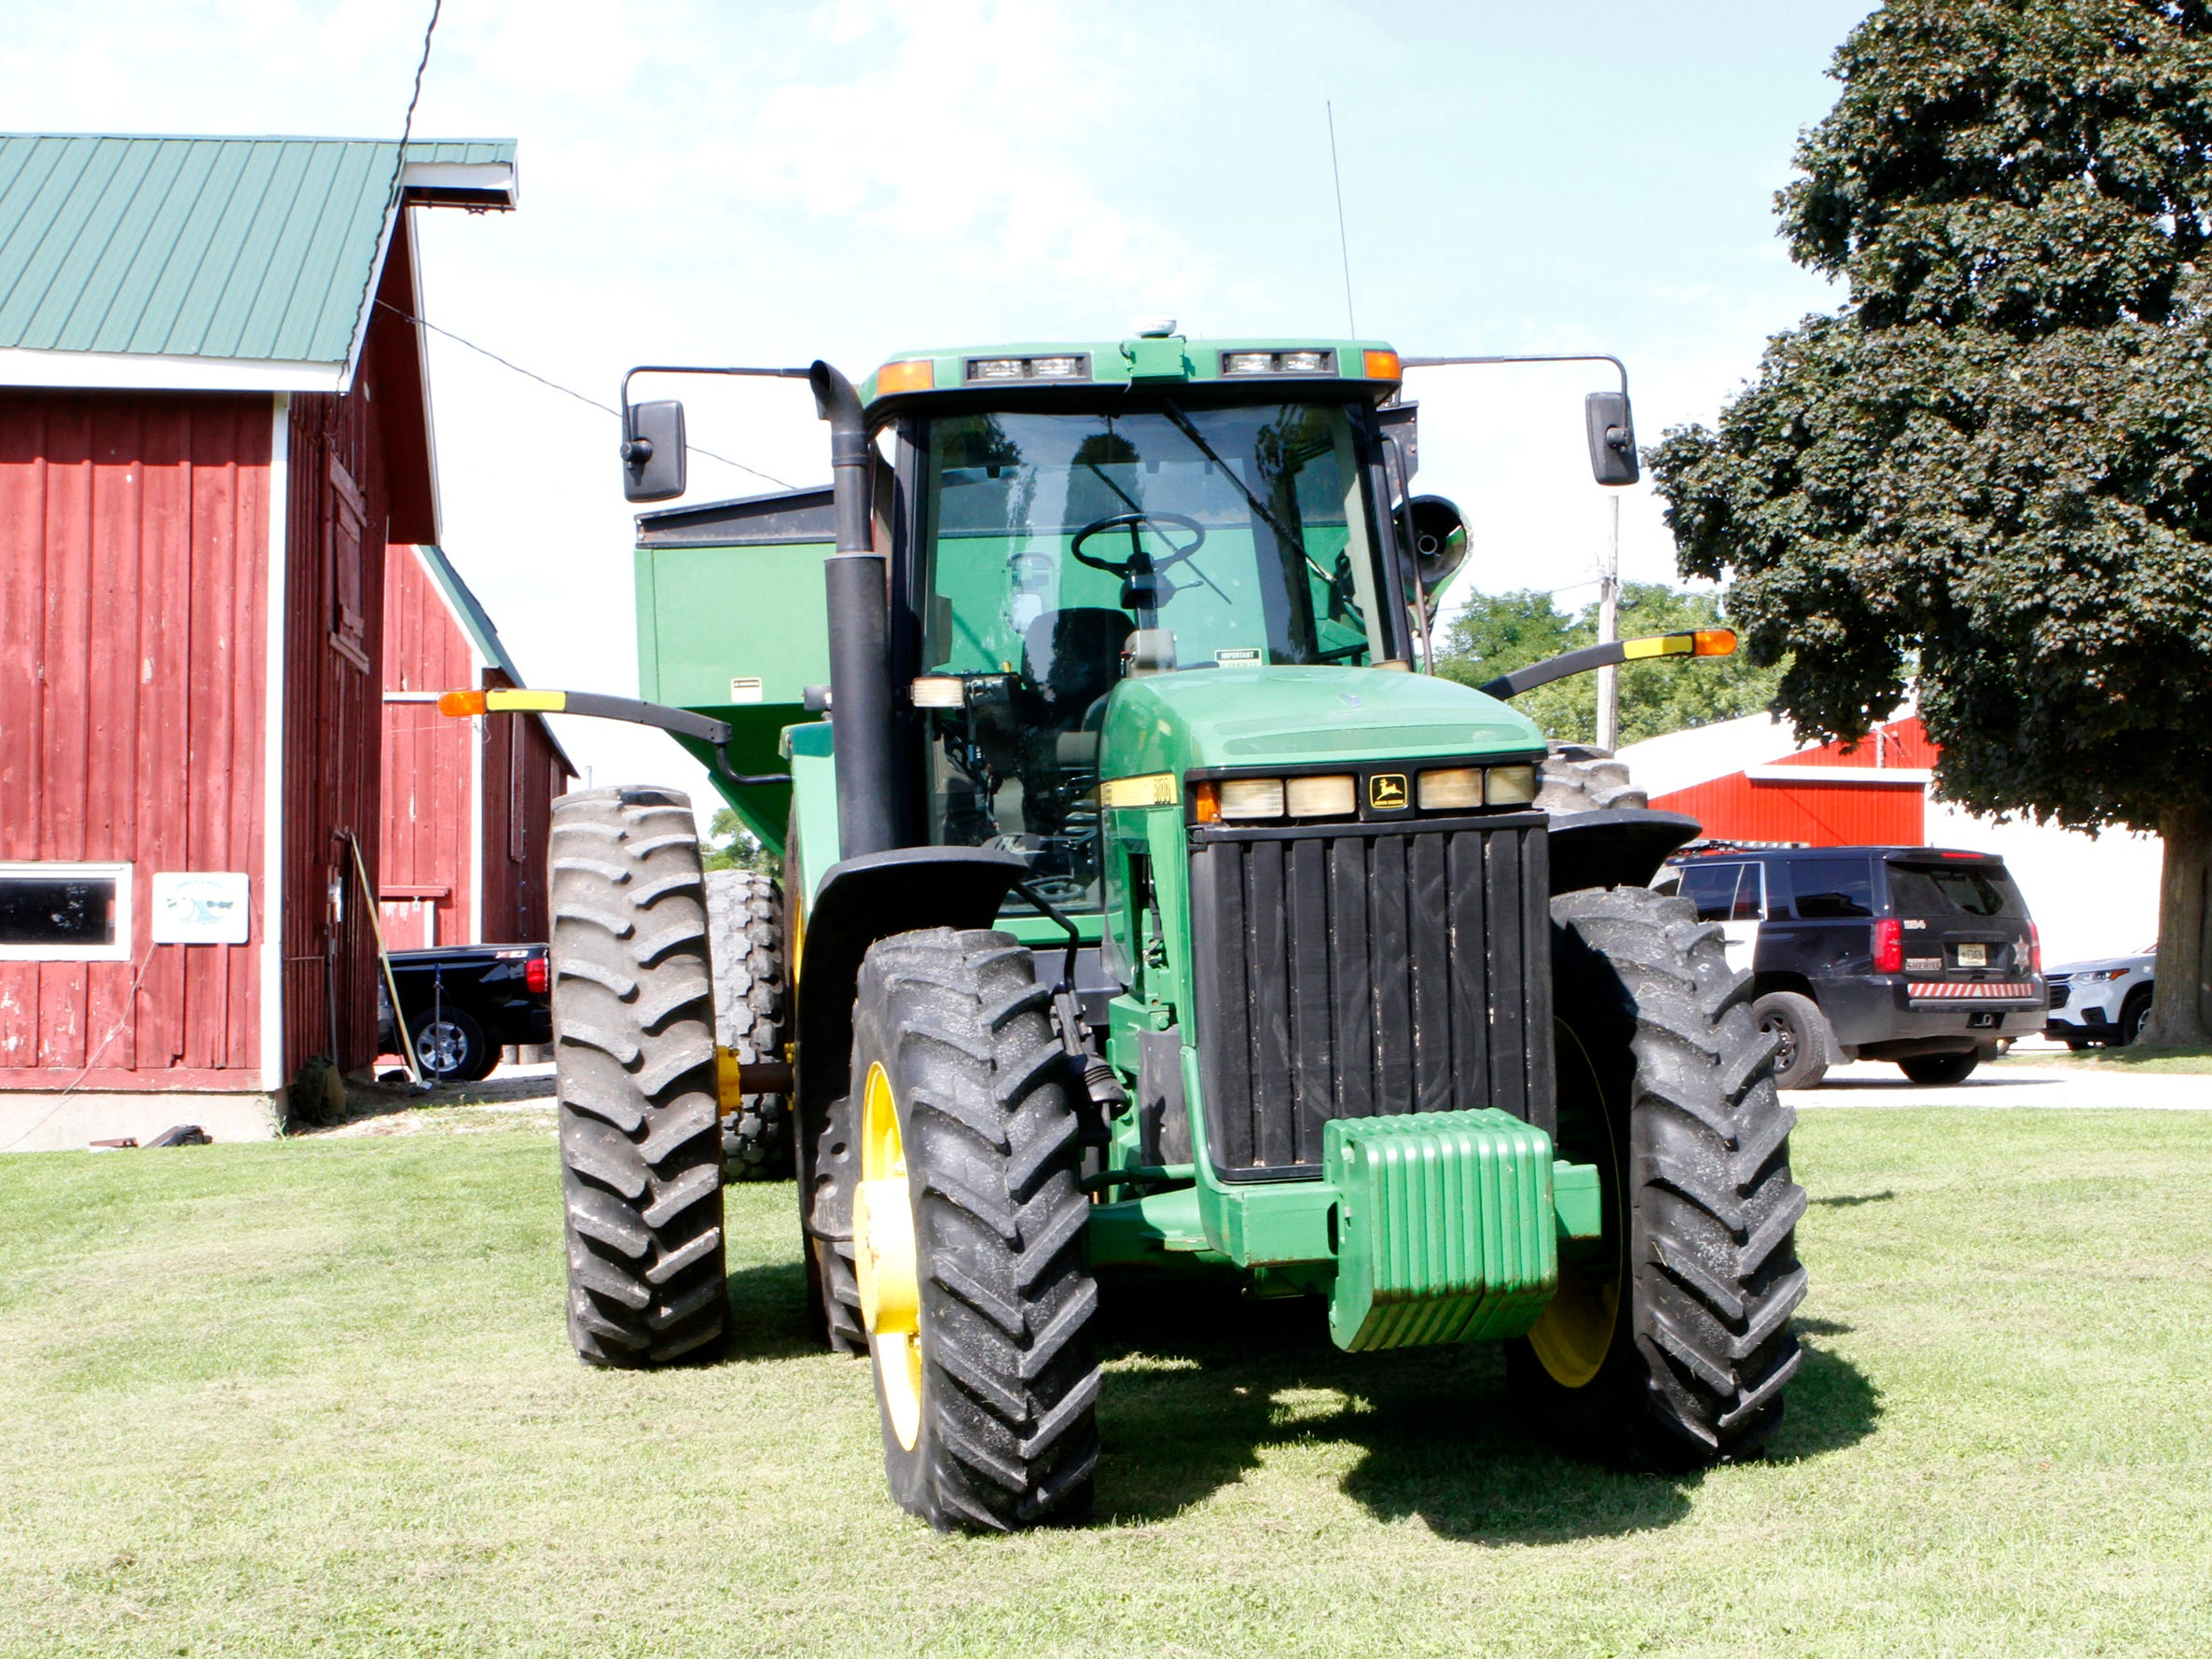 Extensions on each side of the tractor make the equipment more visible to drivers.